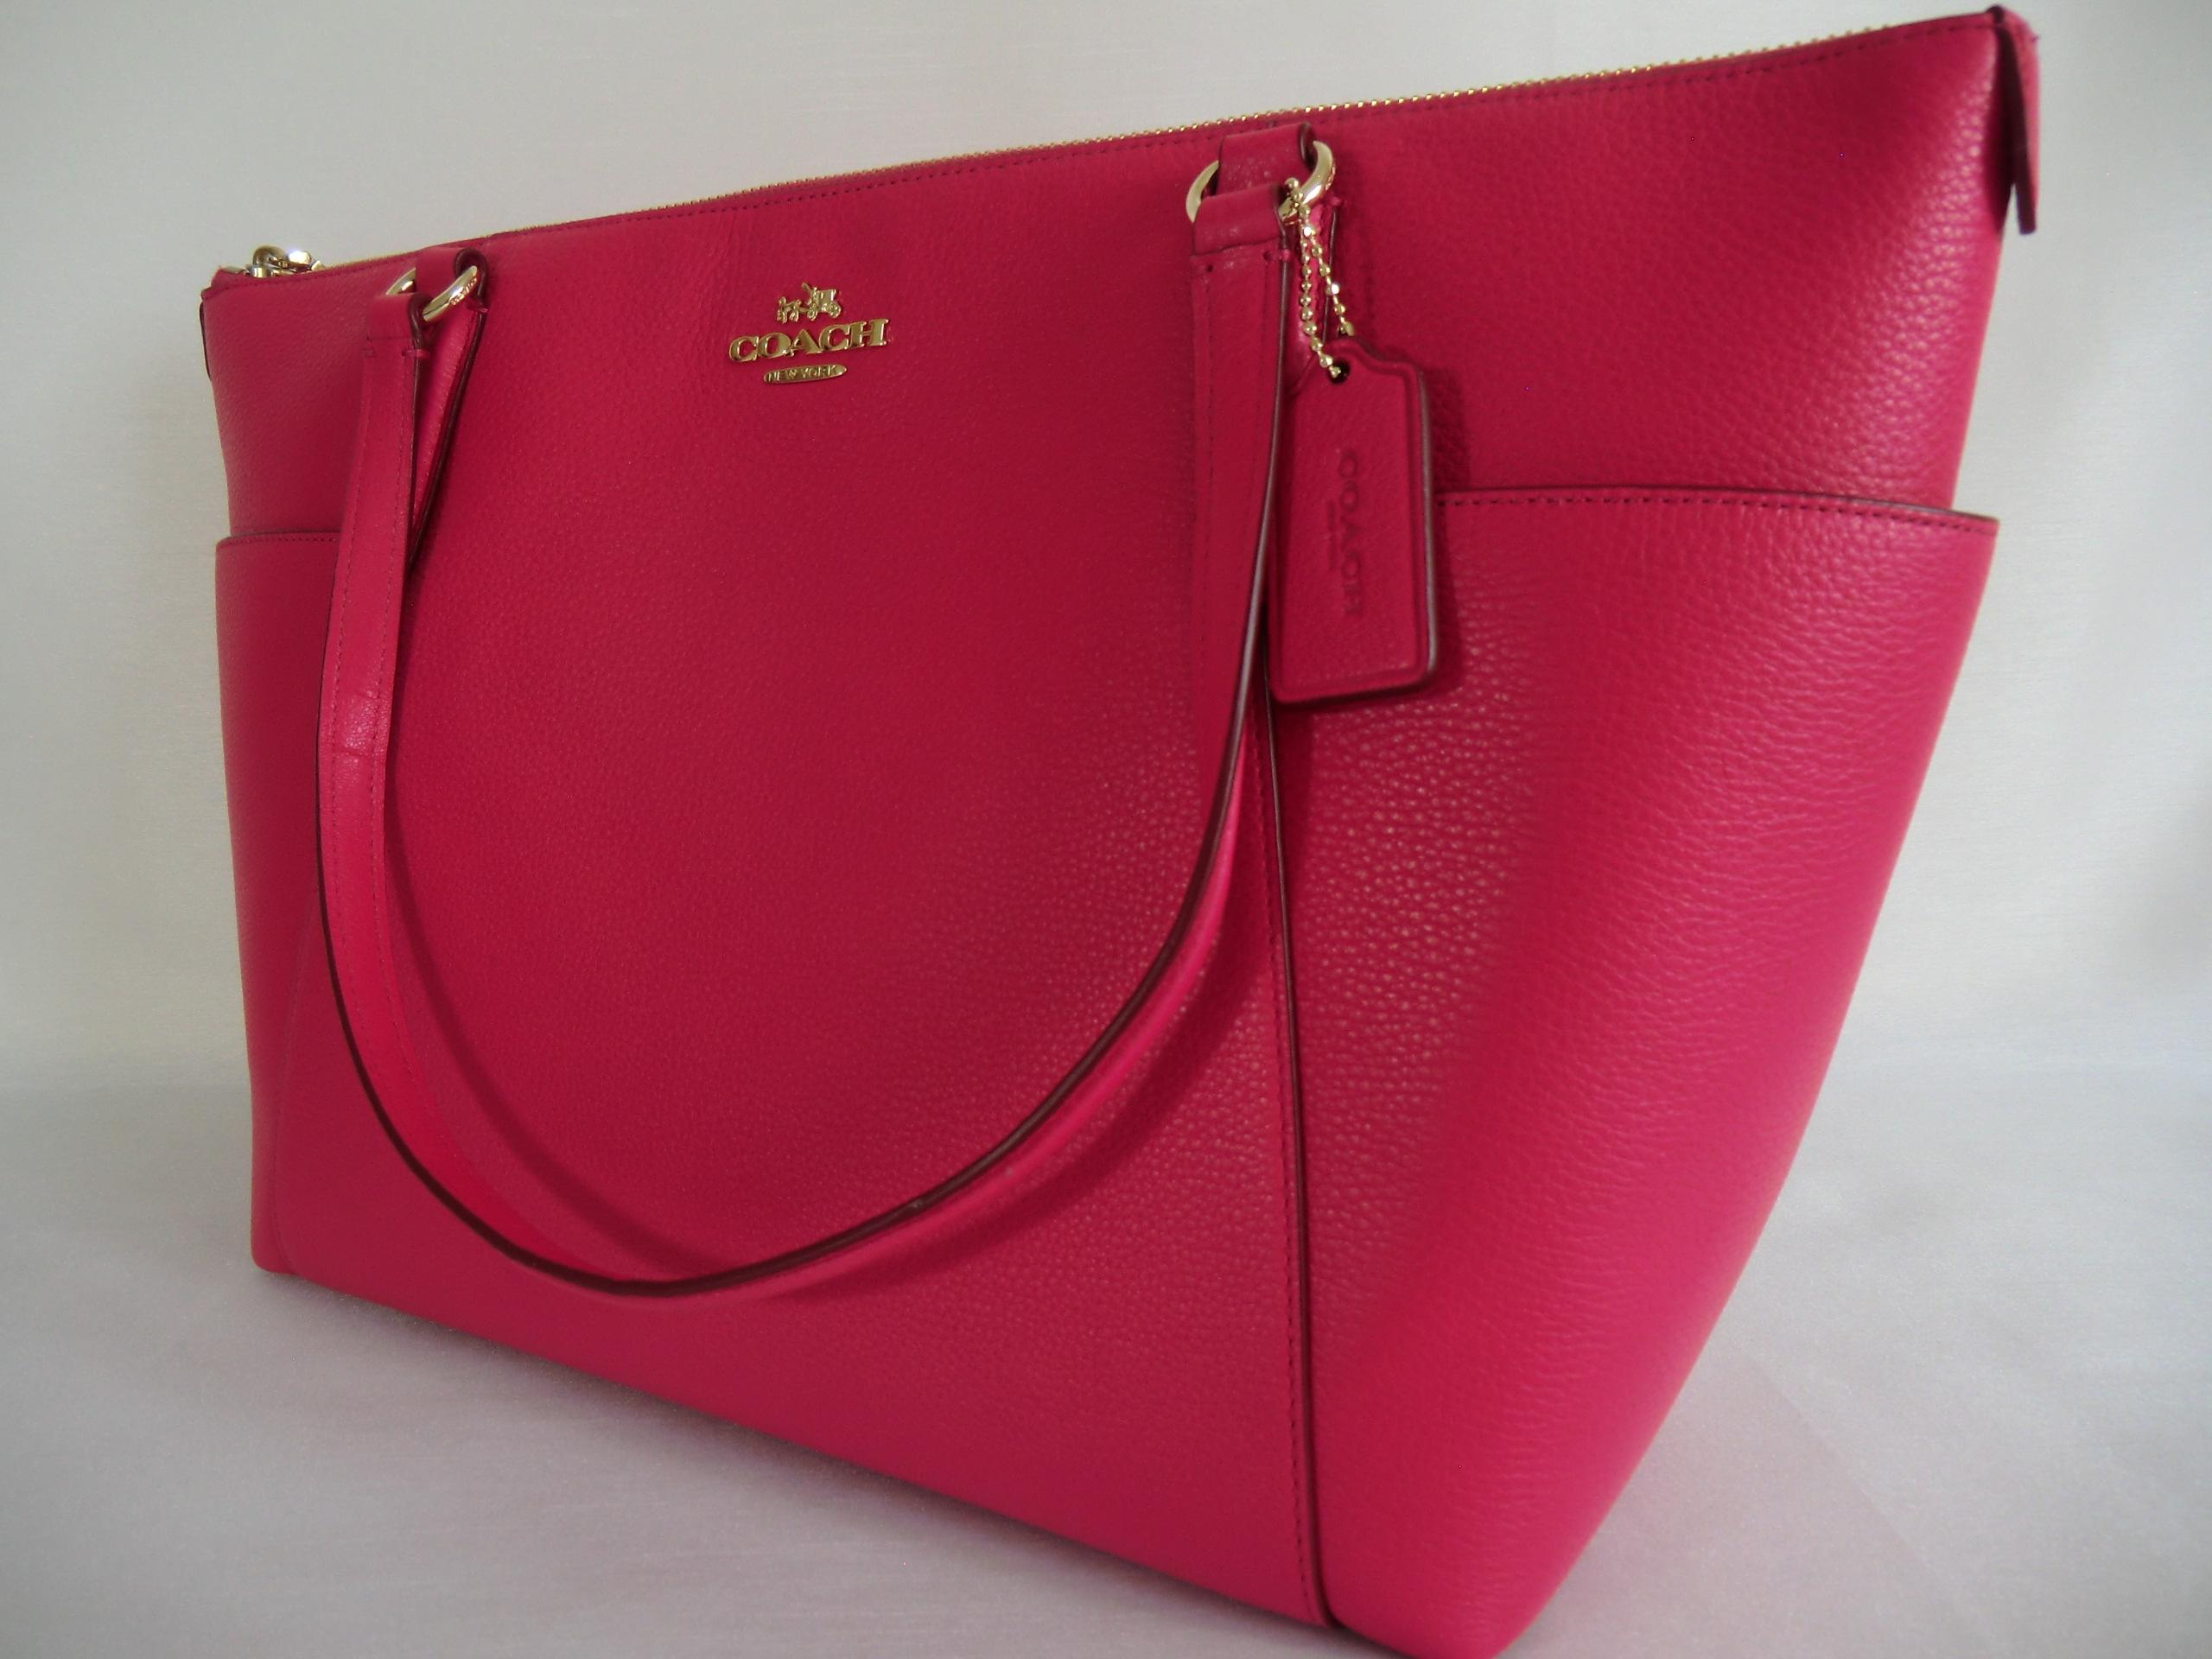 6842a13a9037 ... pink ruby ava ii purse.new 091c8 69905 clearance coach large ava f37216  tote shoulder bag.